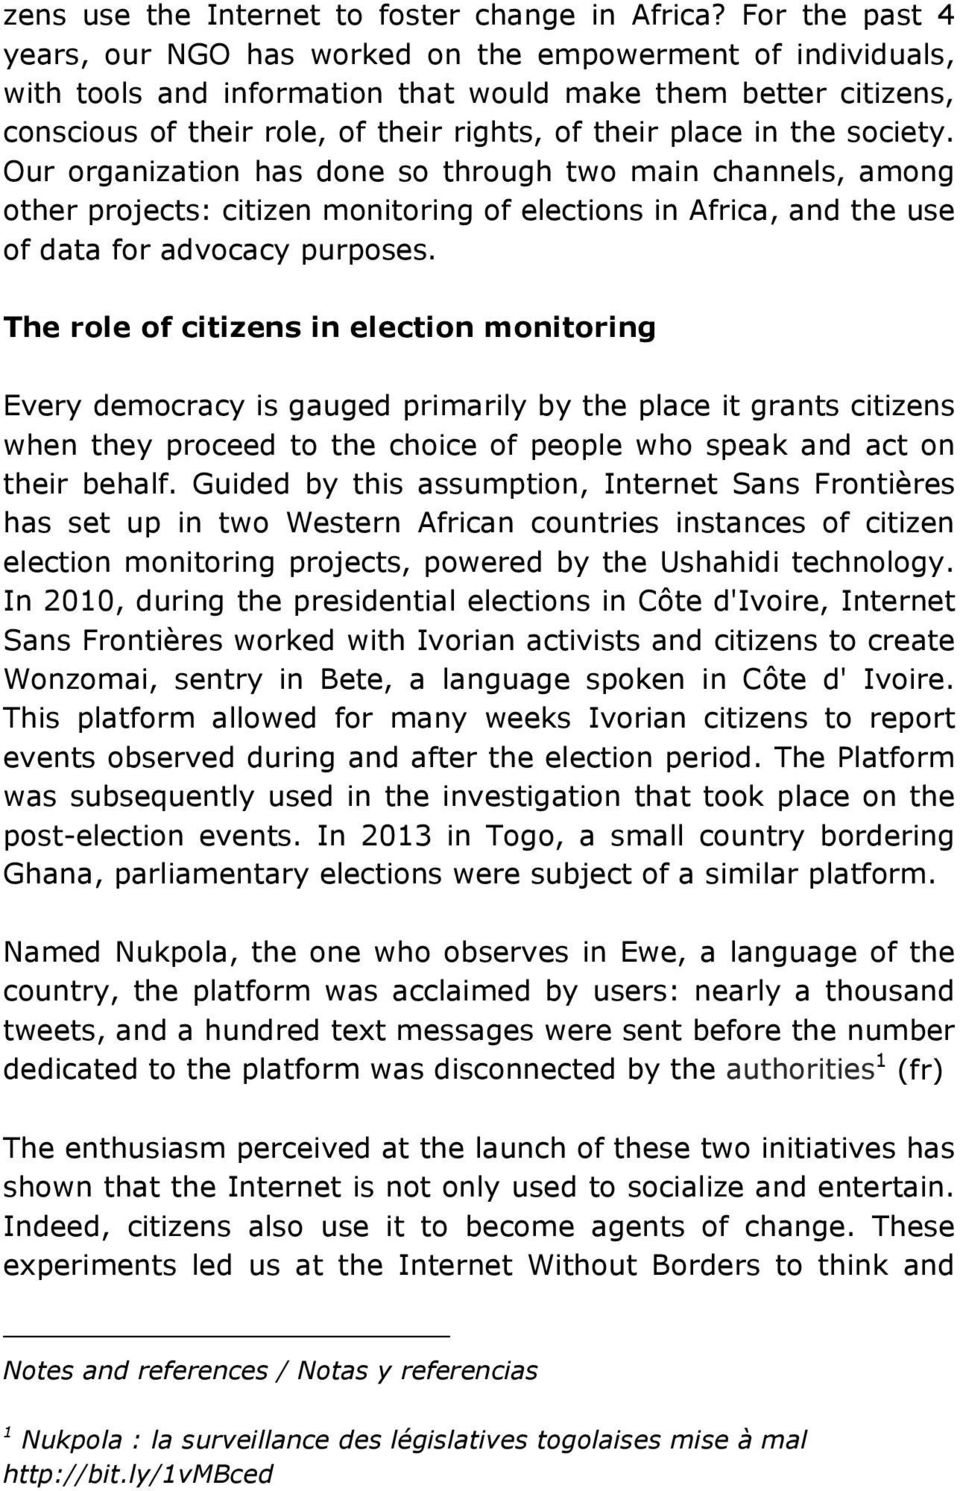 in the society. Our organization has done so through two main channels, among other projects: citizen monitoring of elections in Africa, and the use of data for advocacy purposes.